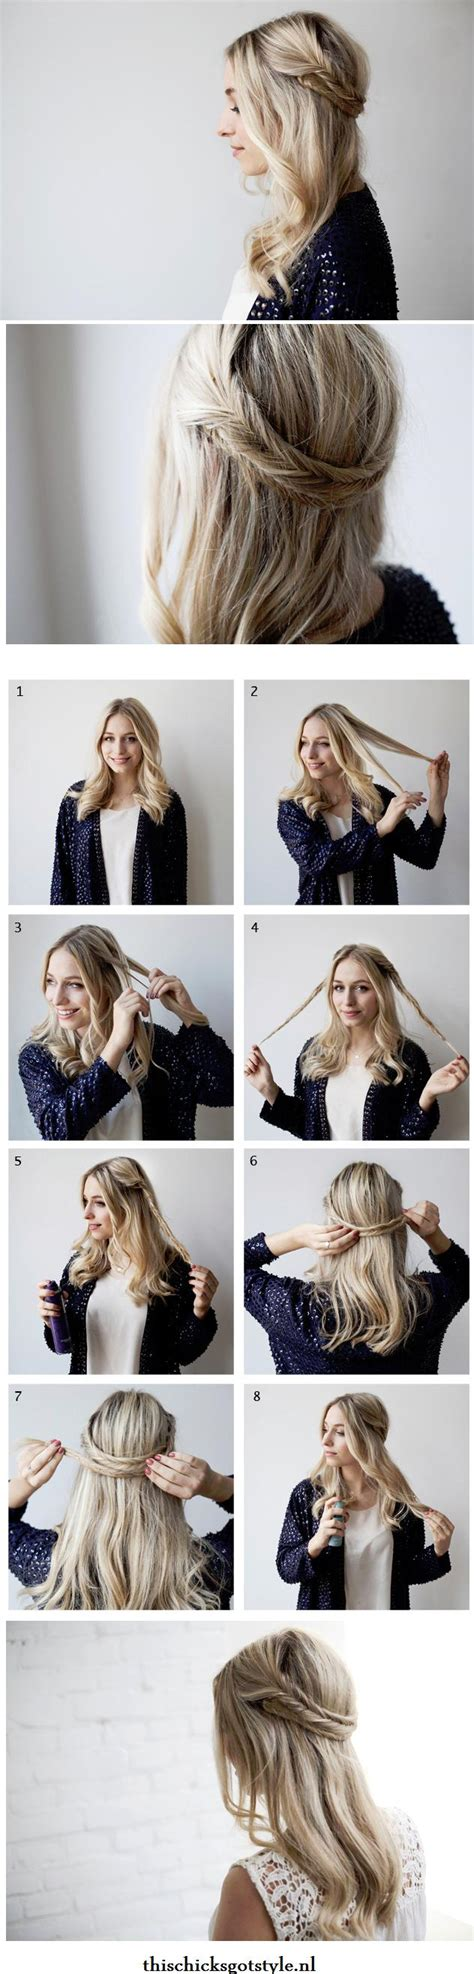 hairstyles for short hair tutorial craftionary